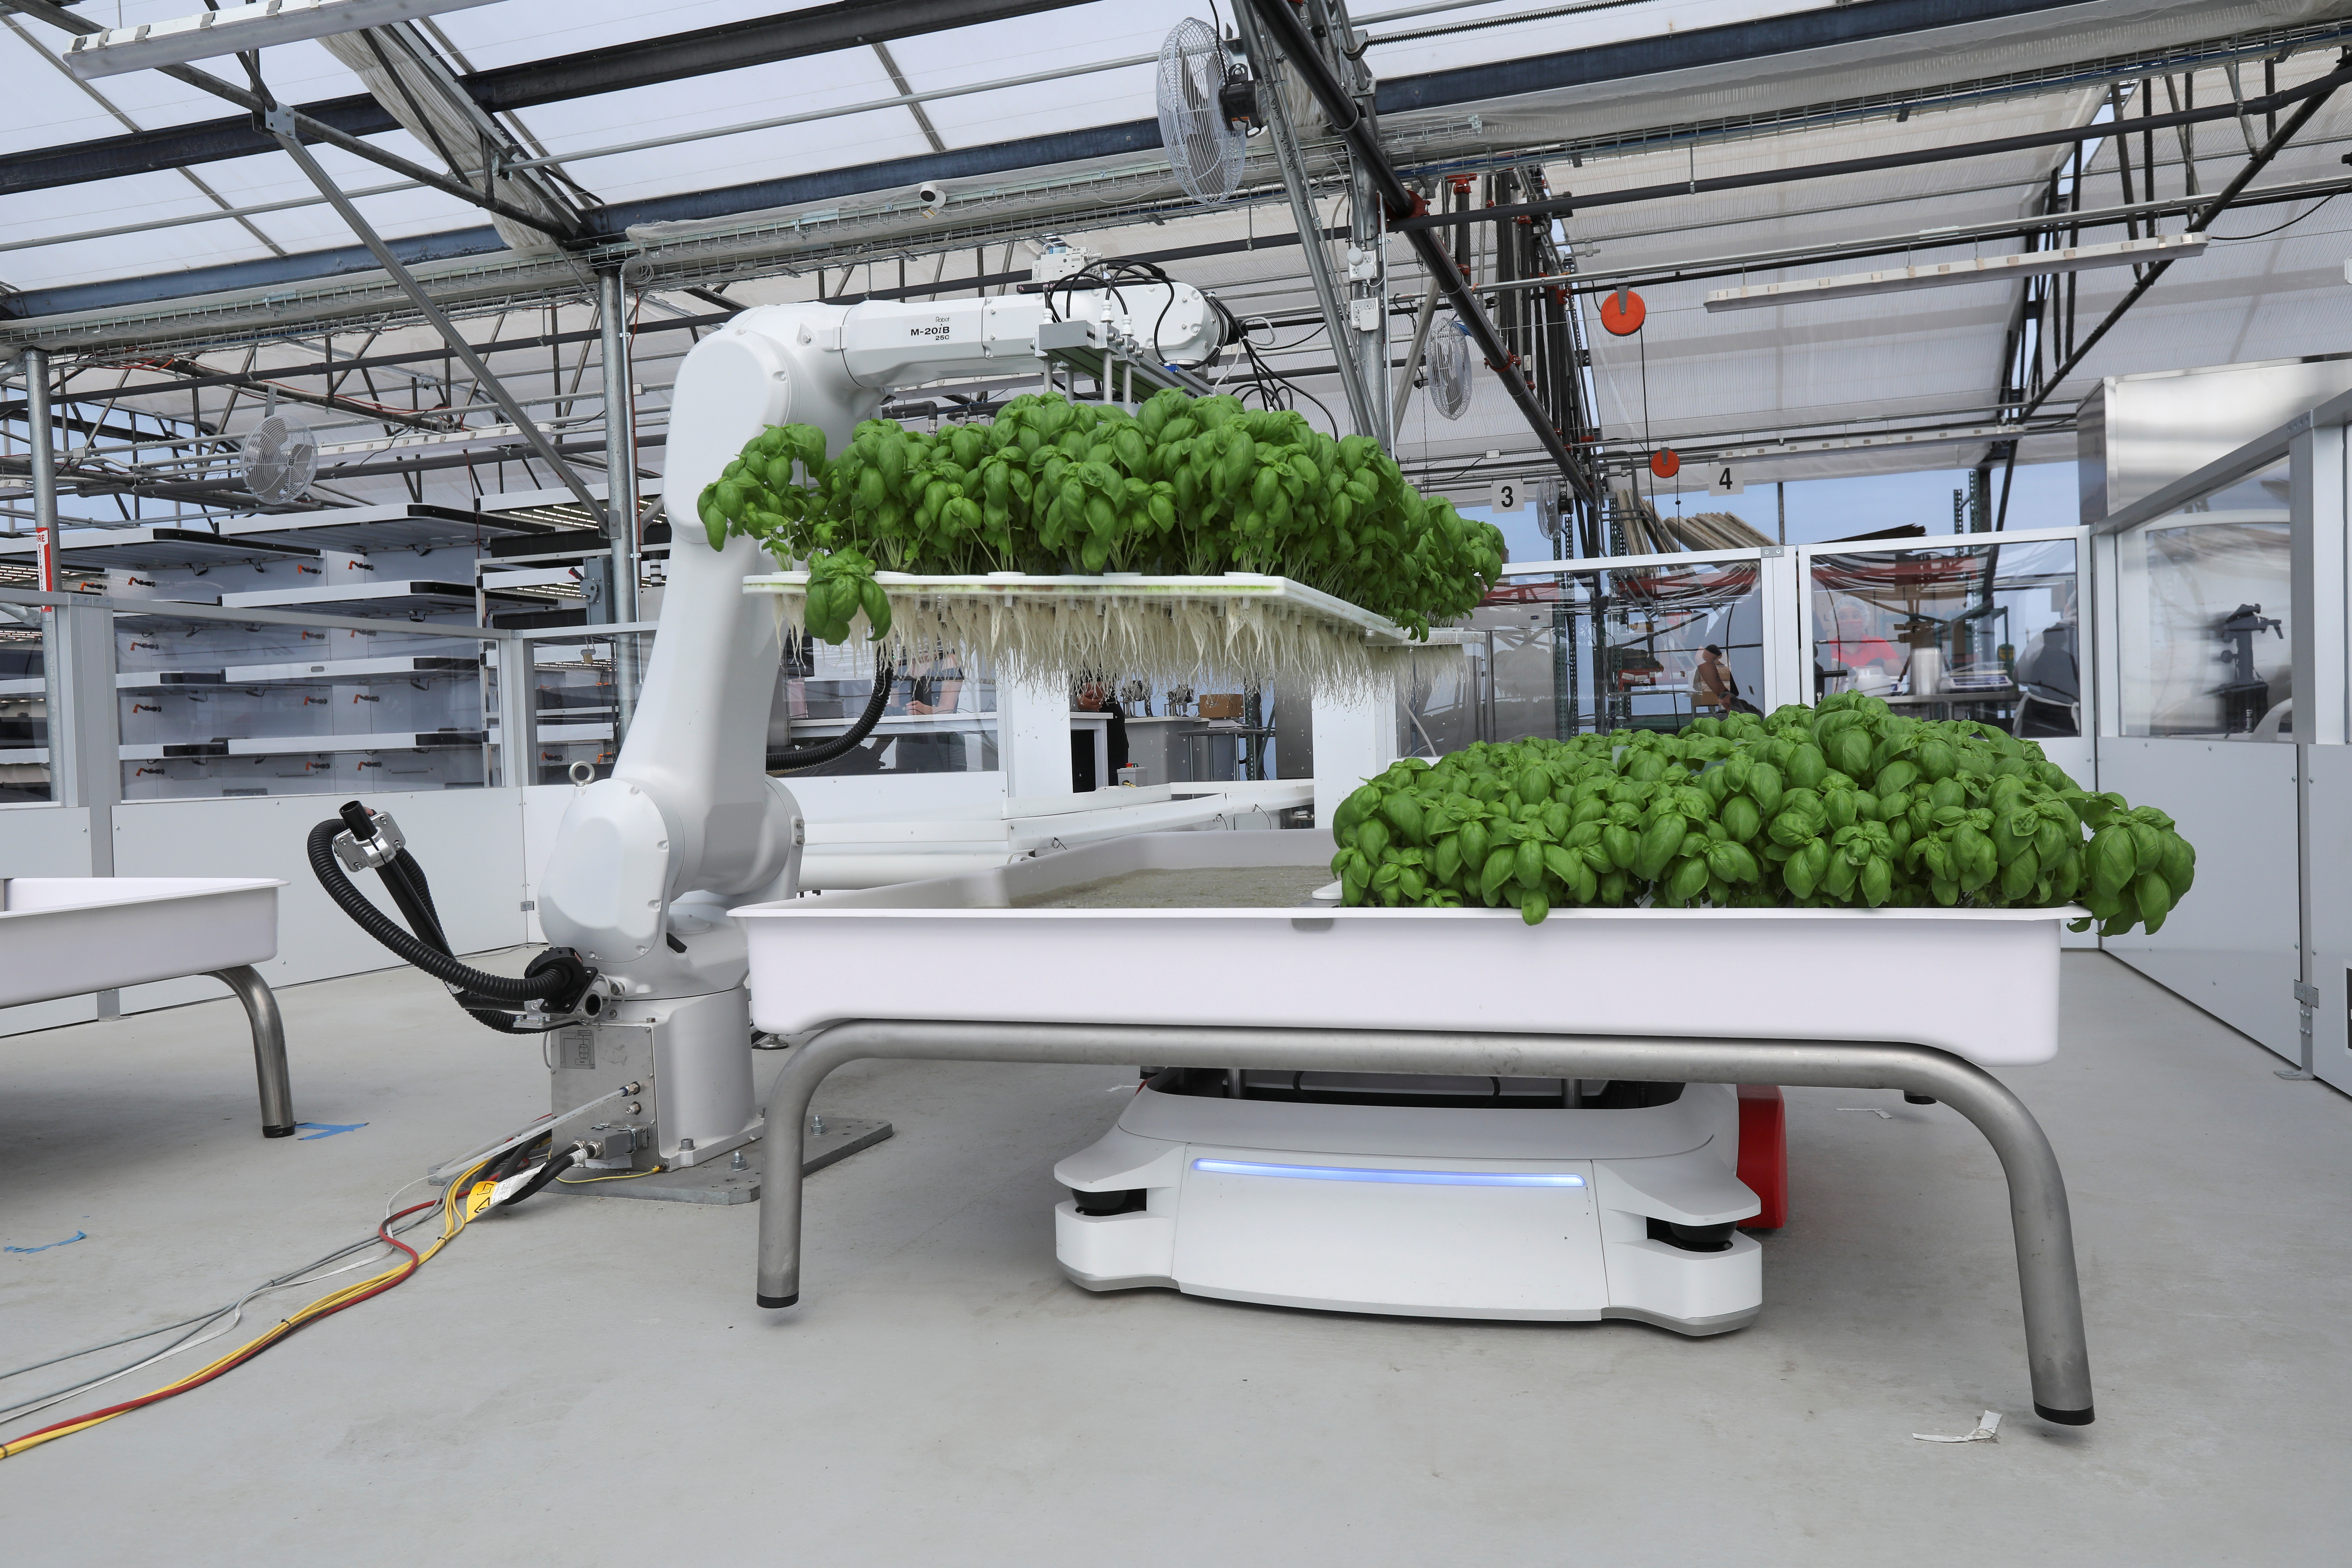 A robotic arm system named Ada lifts Genovese Basil plants for its roots to be inspected at the Iron Ox greenhouse in Gilroy, California, U.S. on September 15, 2021. Picture taken September 15, 2021. REUTERS/Nathan Frandino